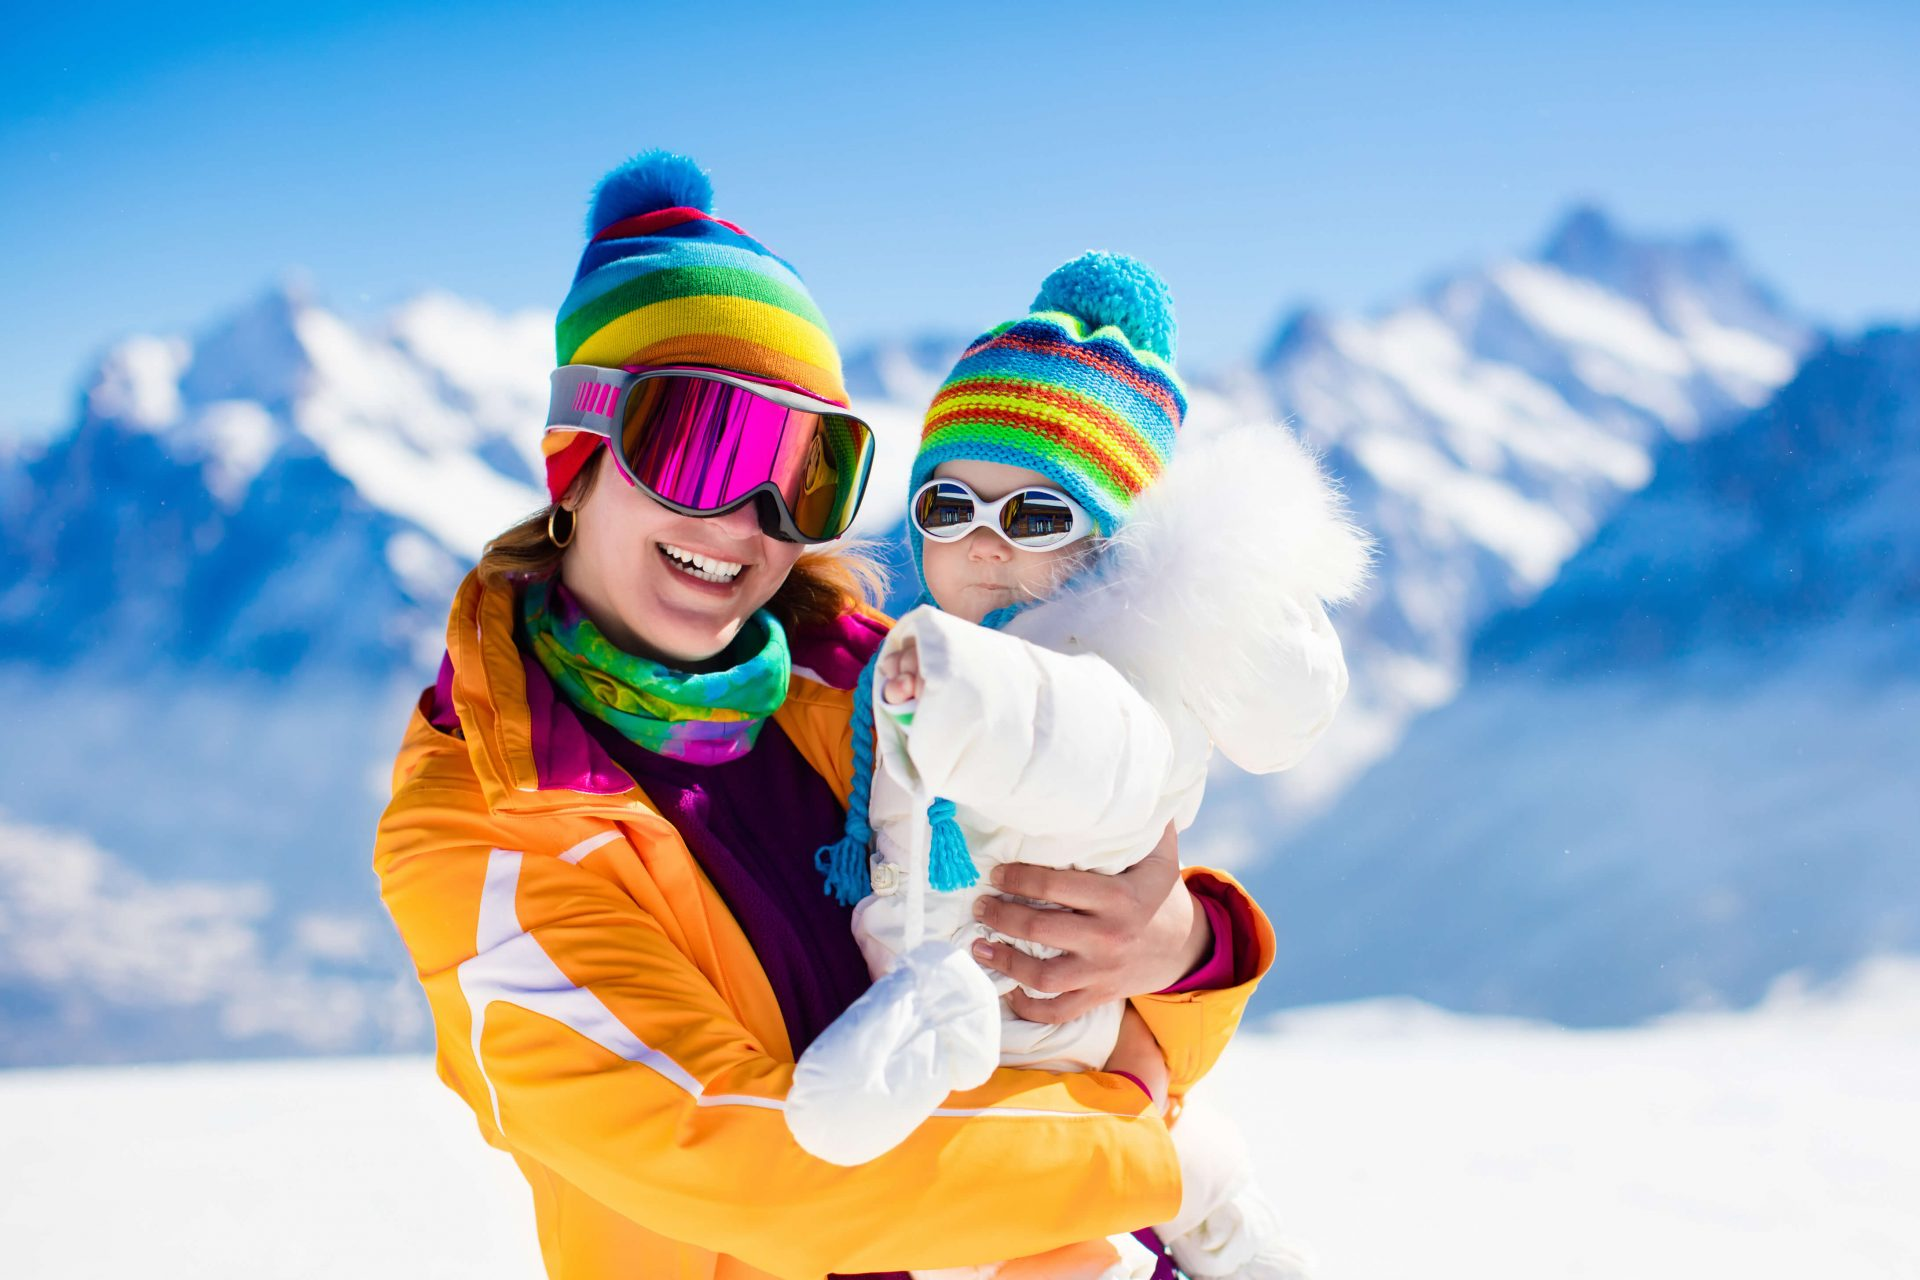 Mother and Child wearing sunglasses in the snowy mountains